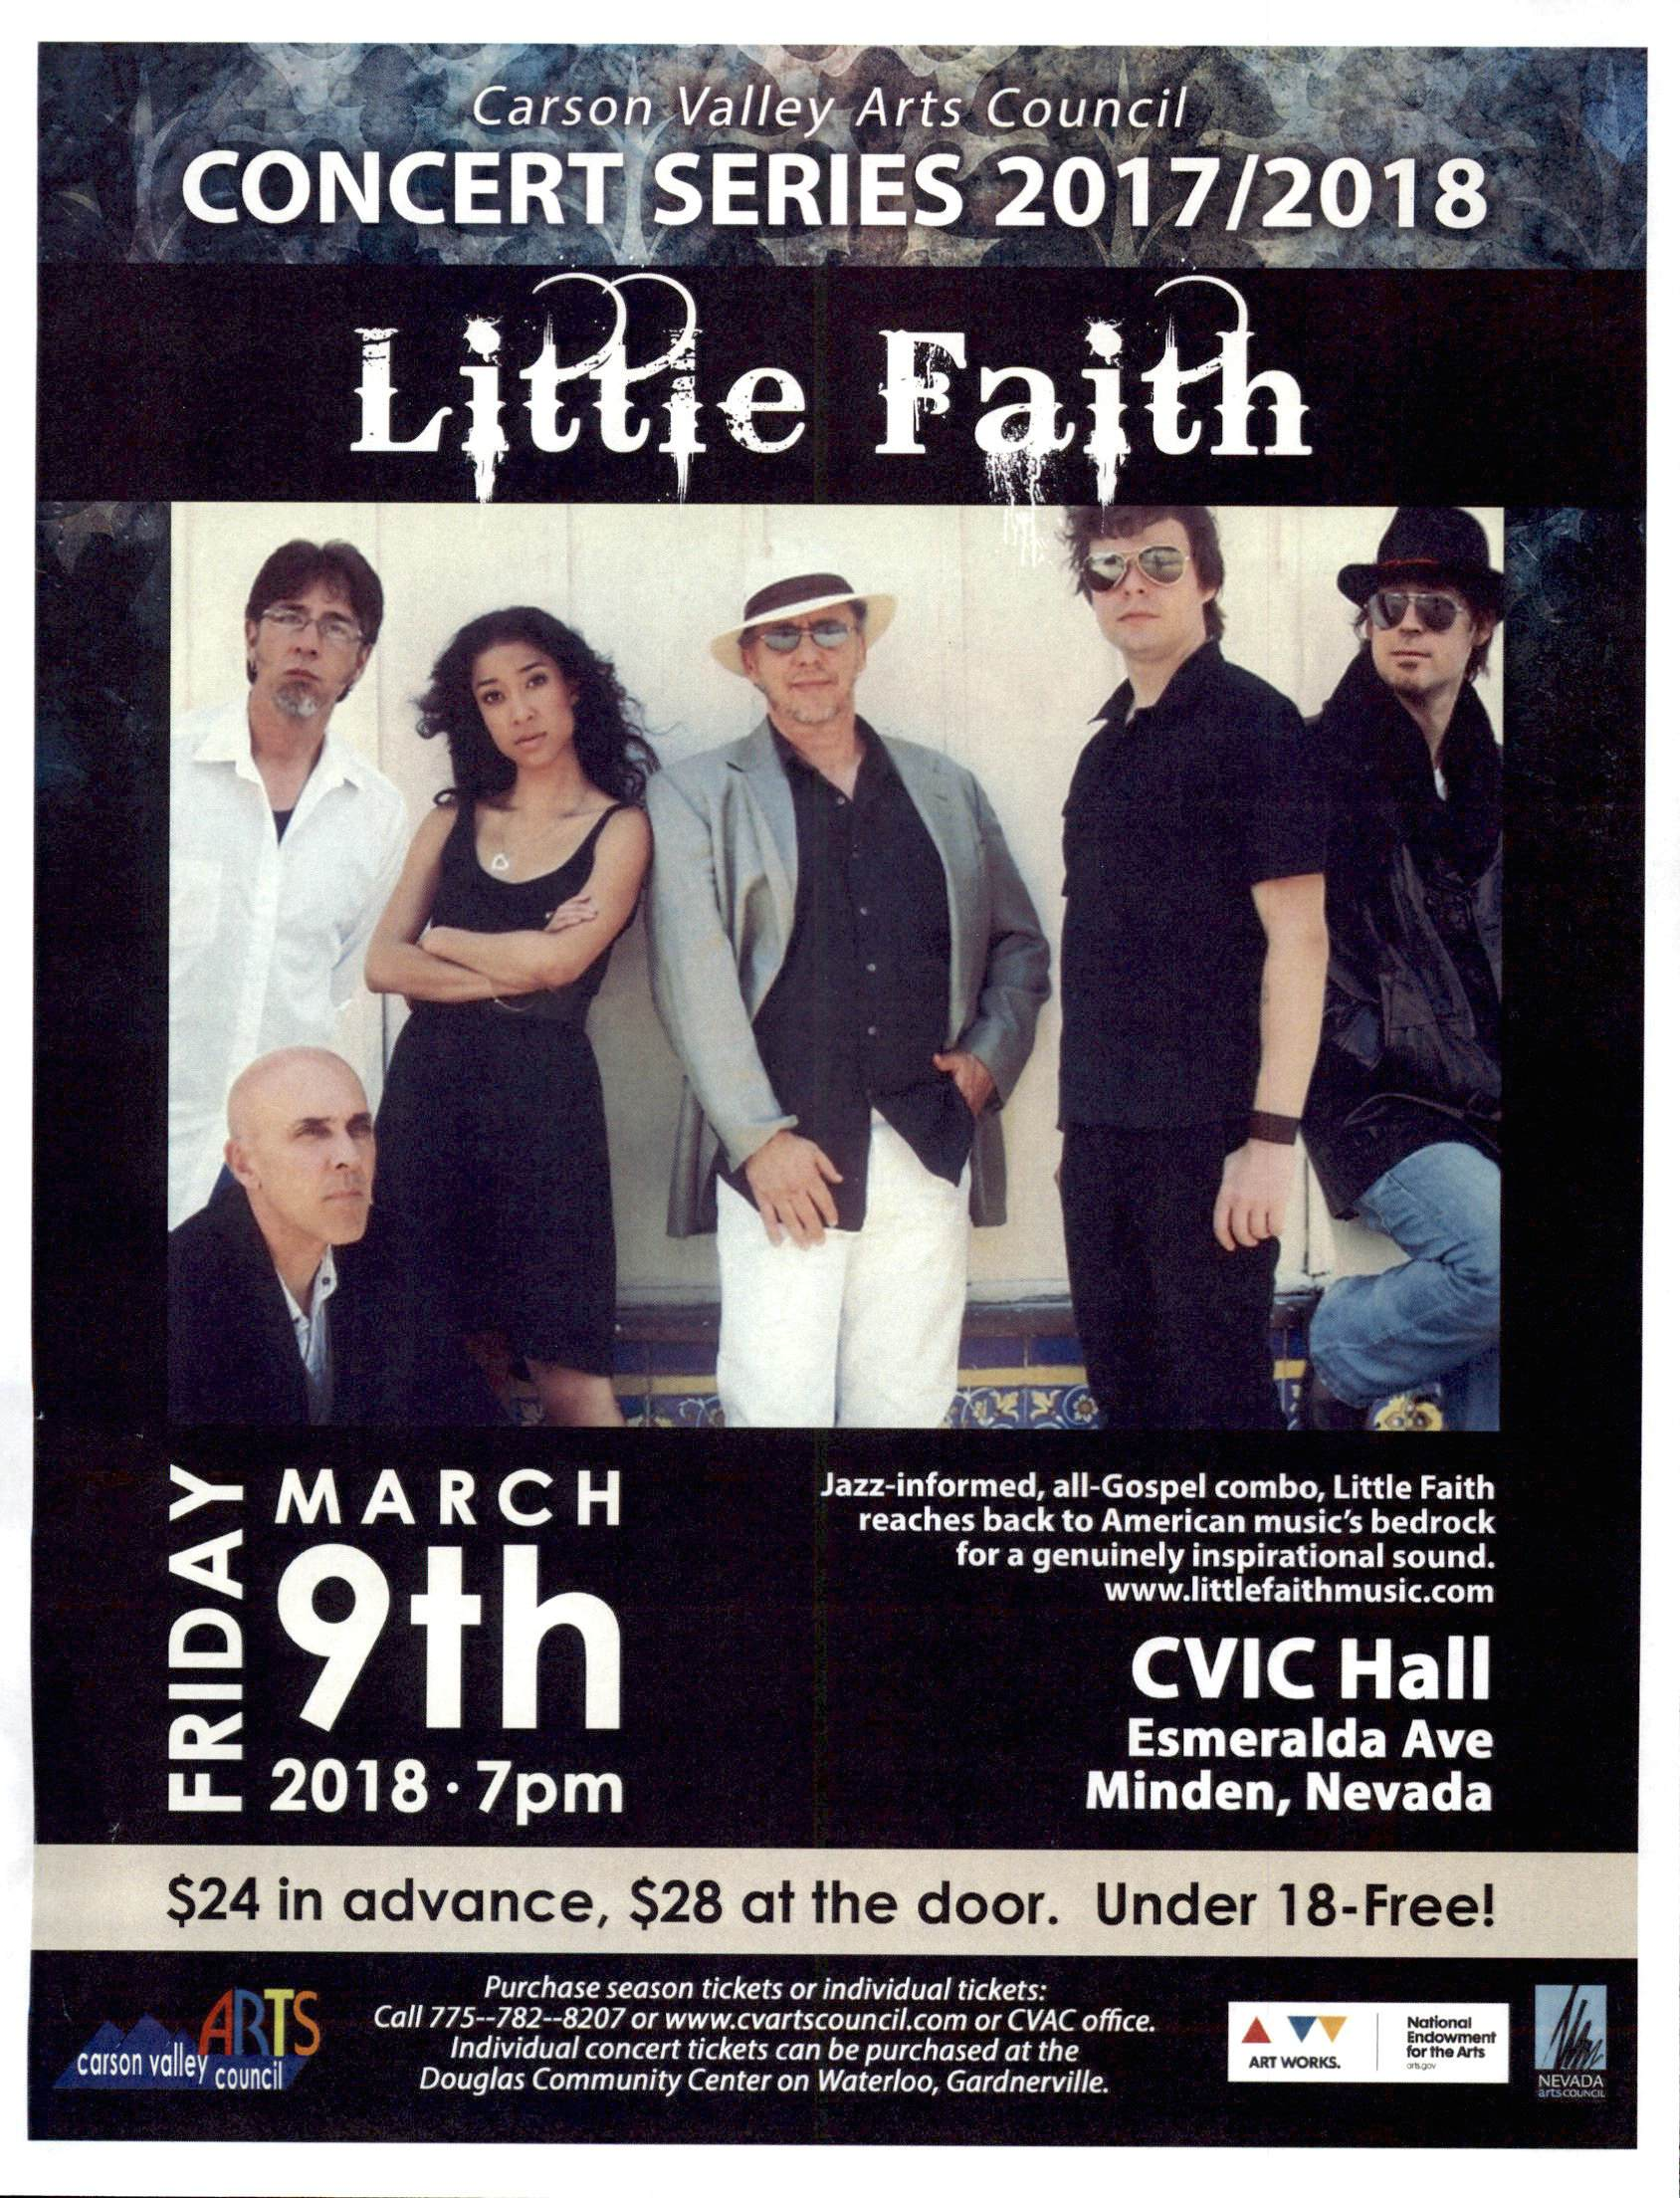 Little Faith Concert 2018